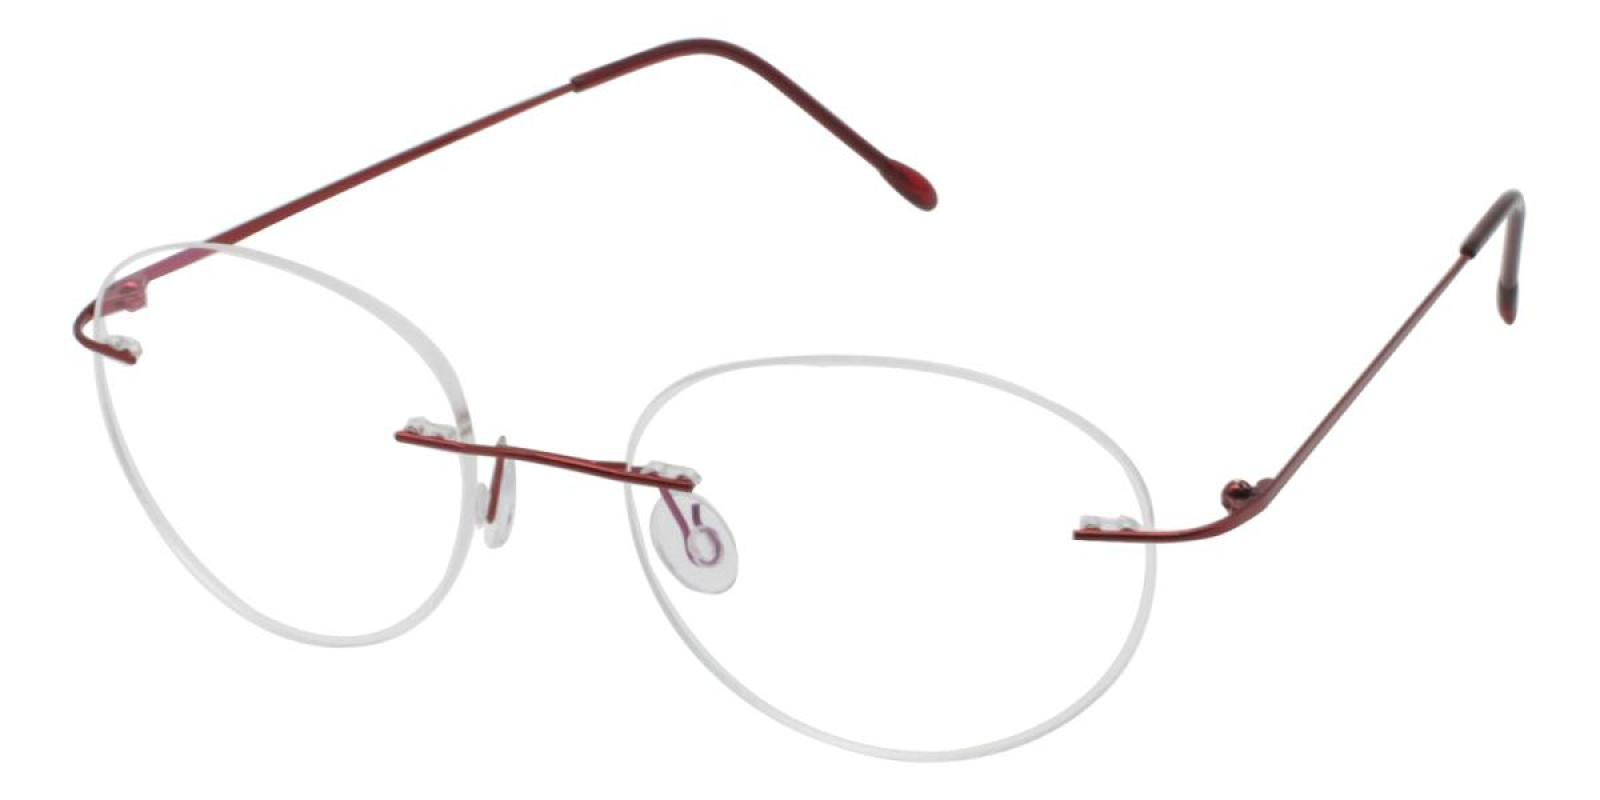 Ditto-Red-Varieties-Metal-Eyeglasses-additional1